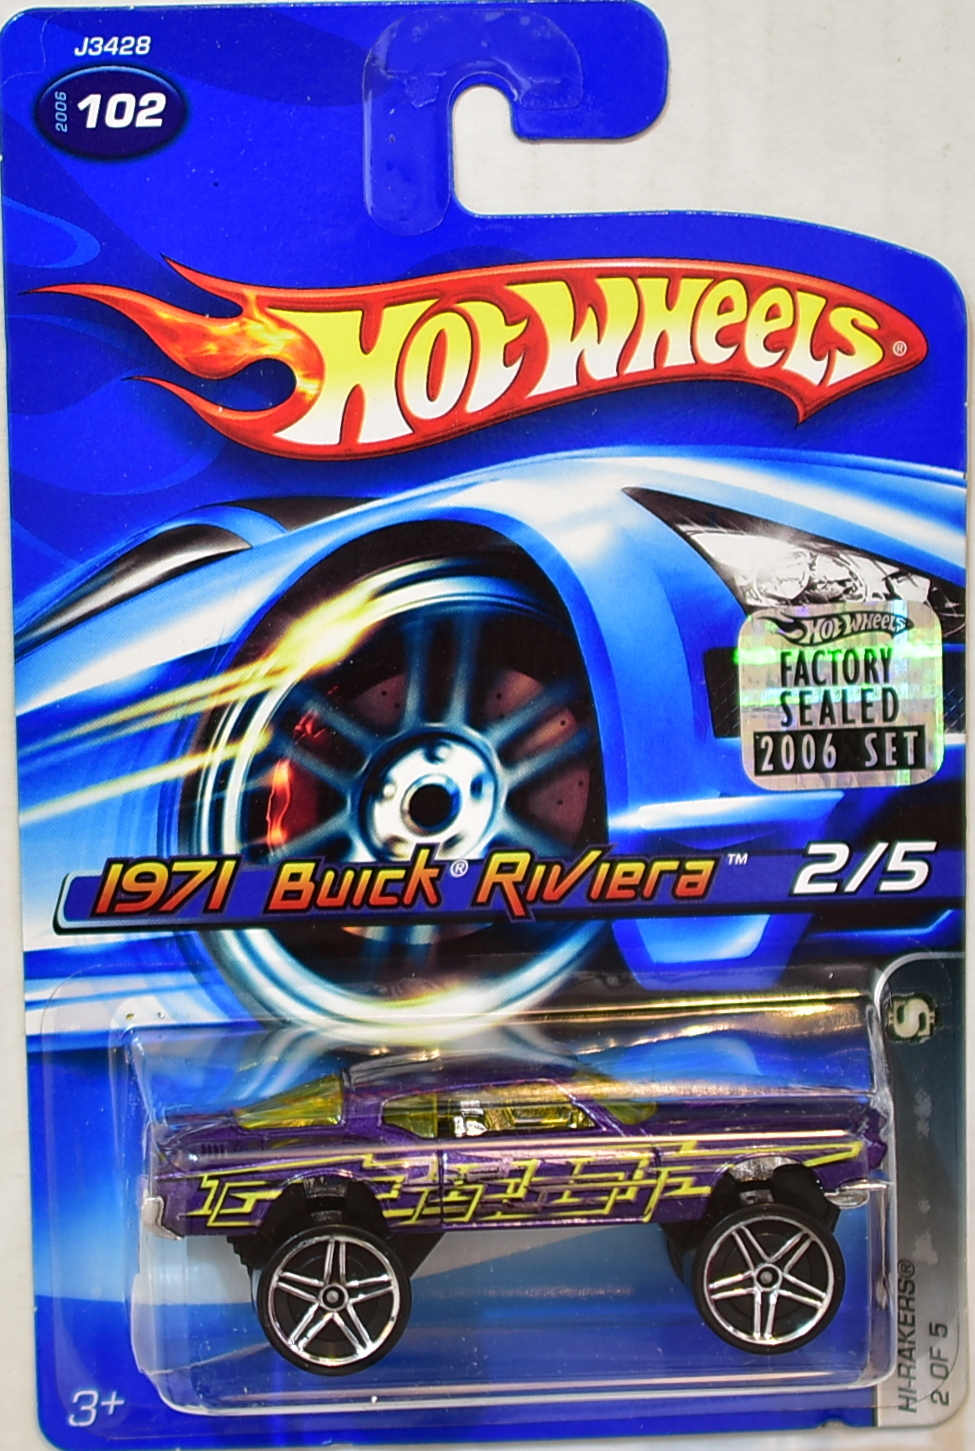 HOT WHEELS 2006 HI-RAKERS 1971 BUICK RIVIERA #102 PURPLE FACTORY SEALED